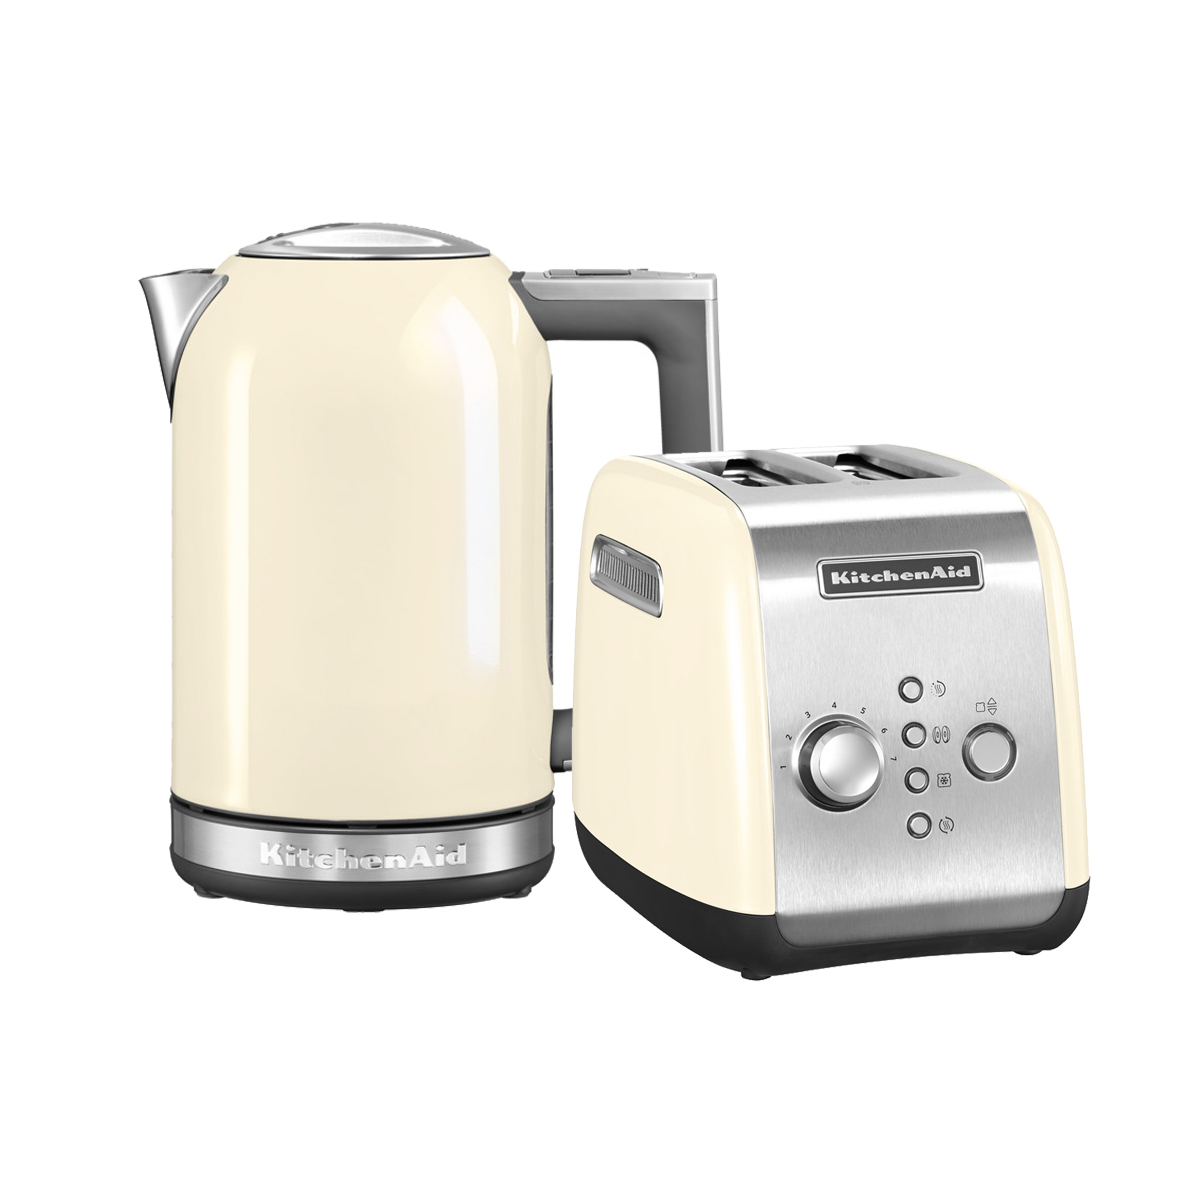 KitchenAid Набор Завтрак KitchenAid Тостер 5KMT221EAC + Чайник 5KEK1722EAC, кремовый